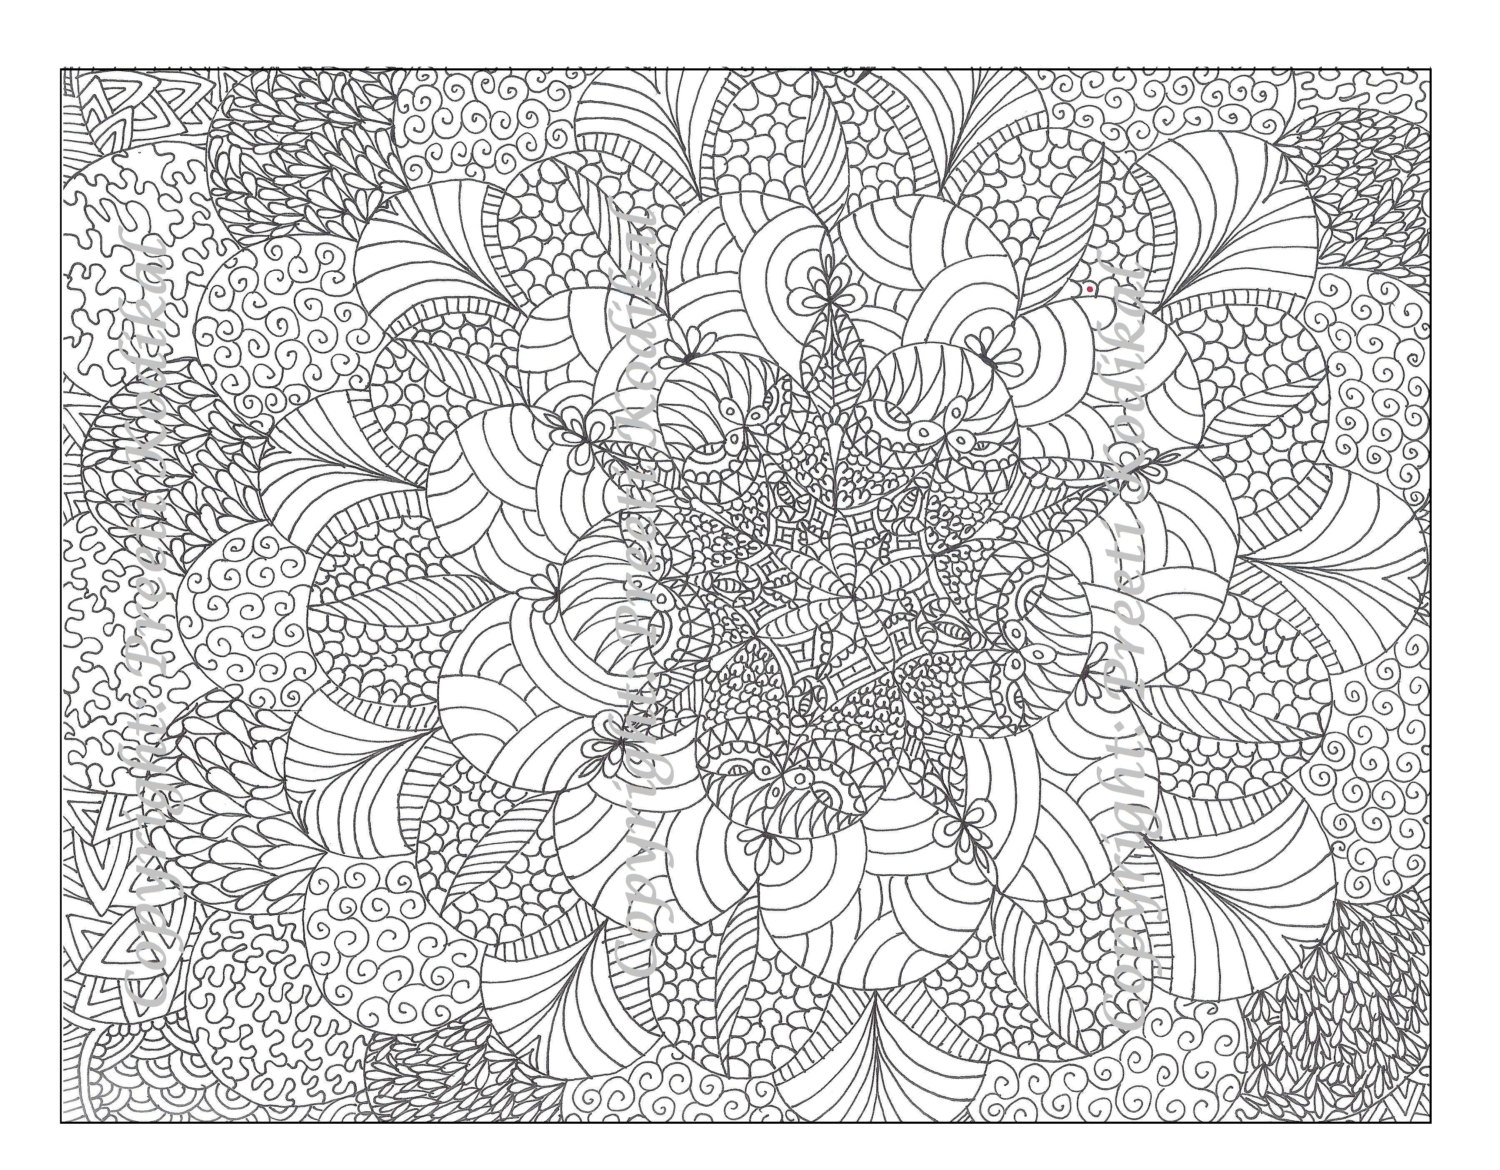 detailed coloring pages printable - Abstract Coloring Pages Printable